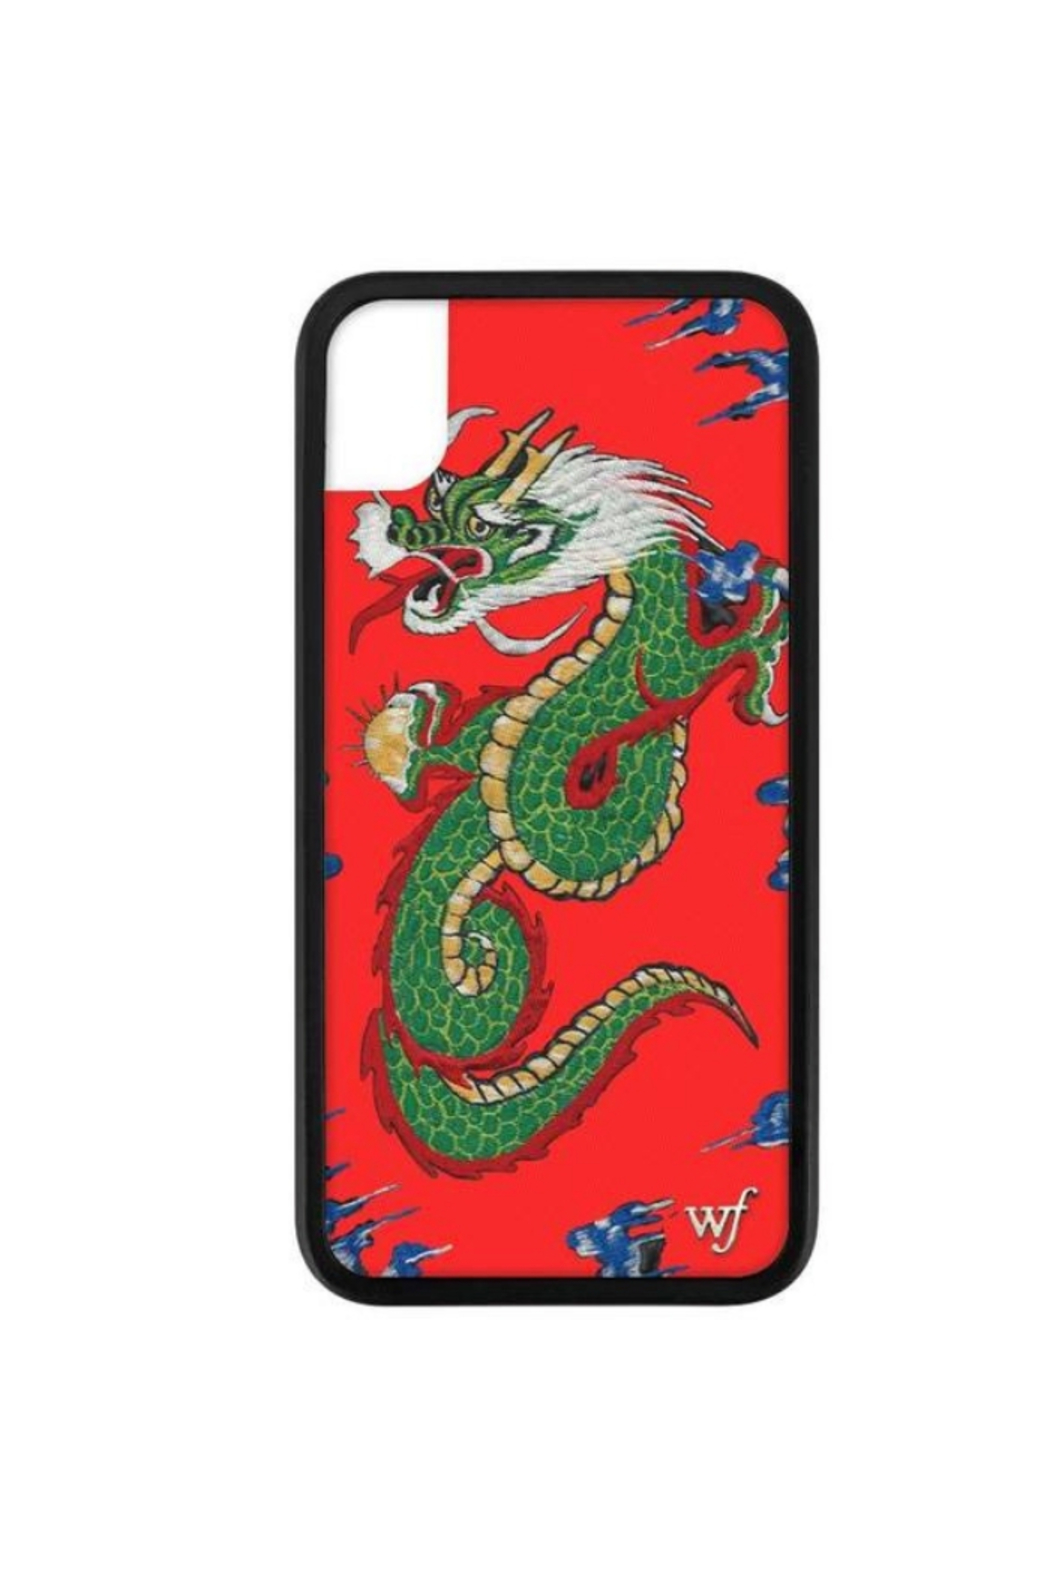 finest selection fab81 faf67 Wildflower Cases Red Dragon iPhone Xr Case from New York by Let's ...